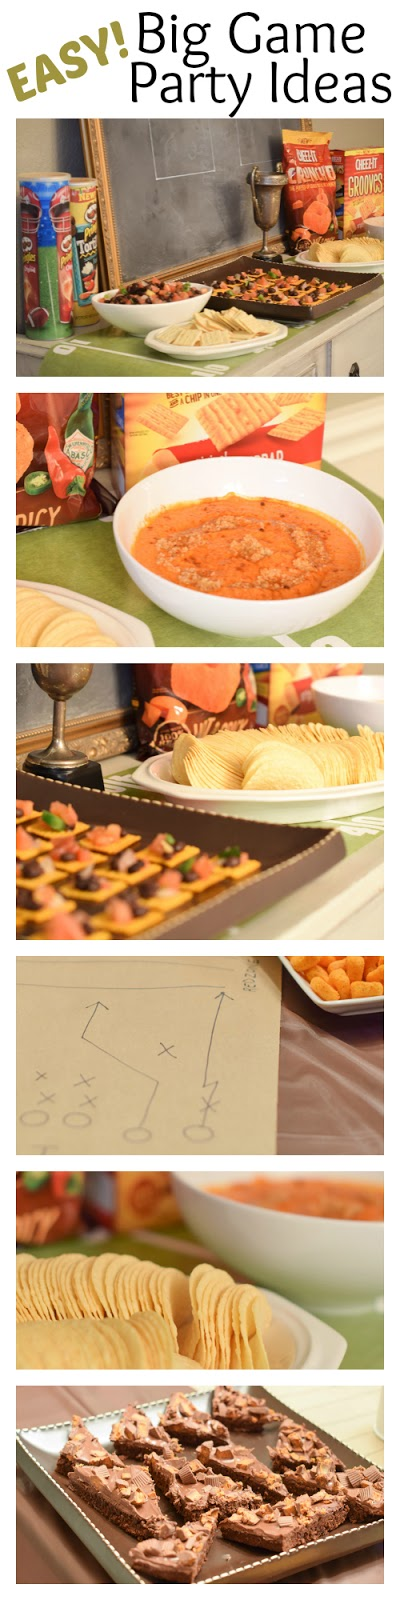 Easy party ideas for your Big Game Party! An easy to throw party for the Big Game. Features easy party ideas for snacks, dips and decor. Includes a recipe for Roasted Red Pepper Hummus without seeds! #BigGameSnacks #collectiveBias #ad